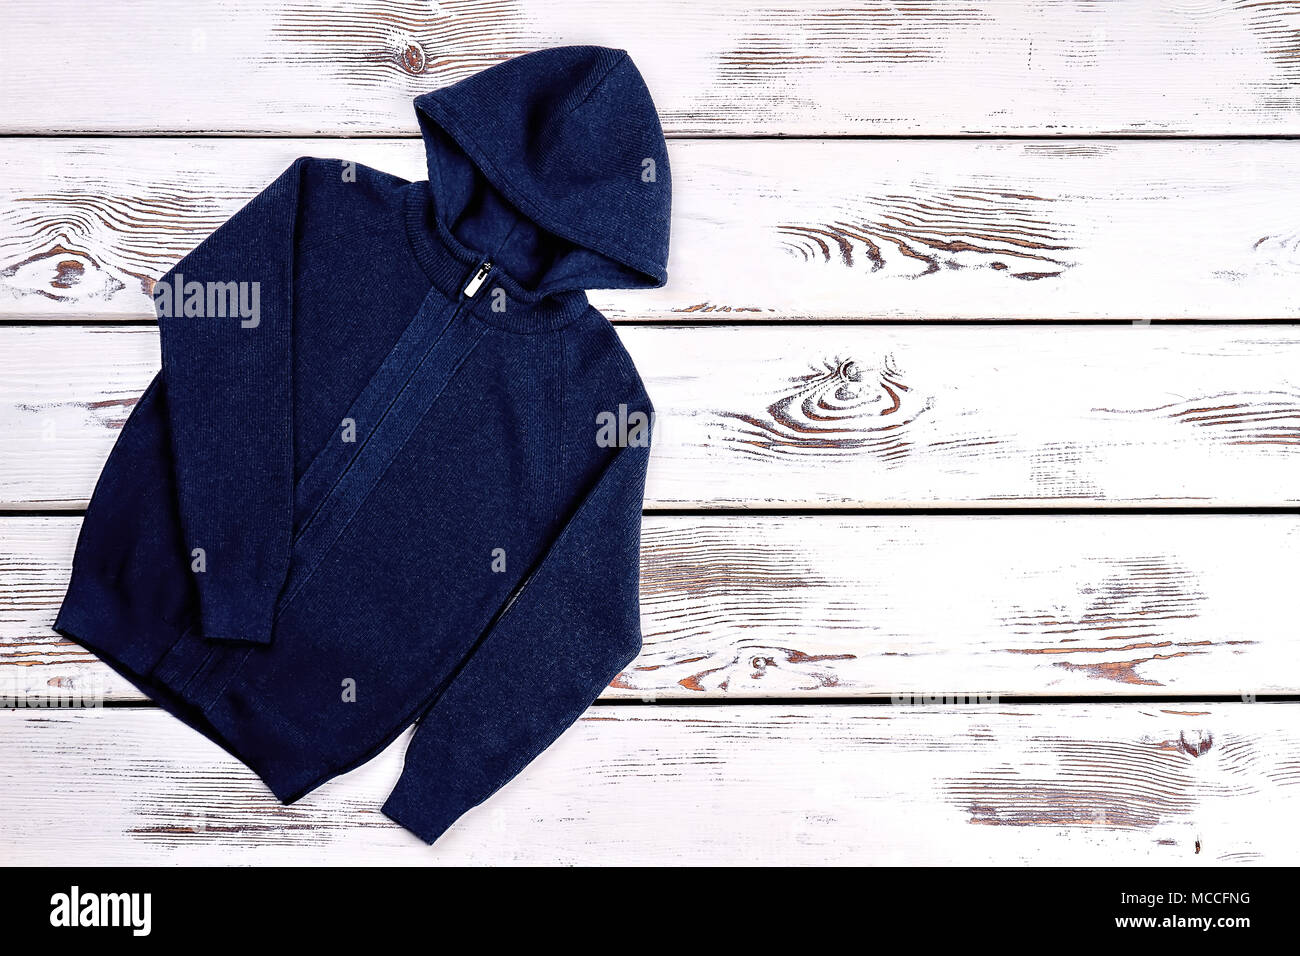 dc96792728e7 Baby boy knitted hooded sweater. Dark blue hooded jacket for baby ...